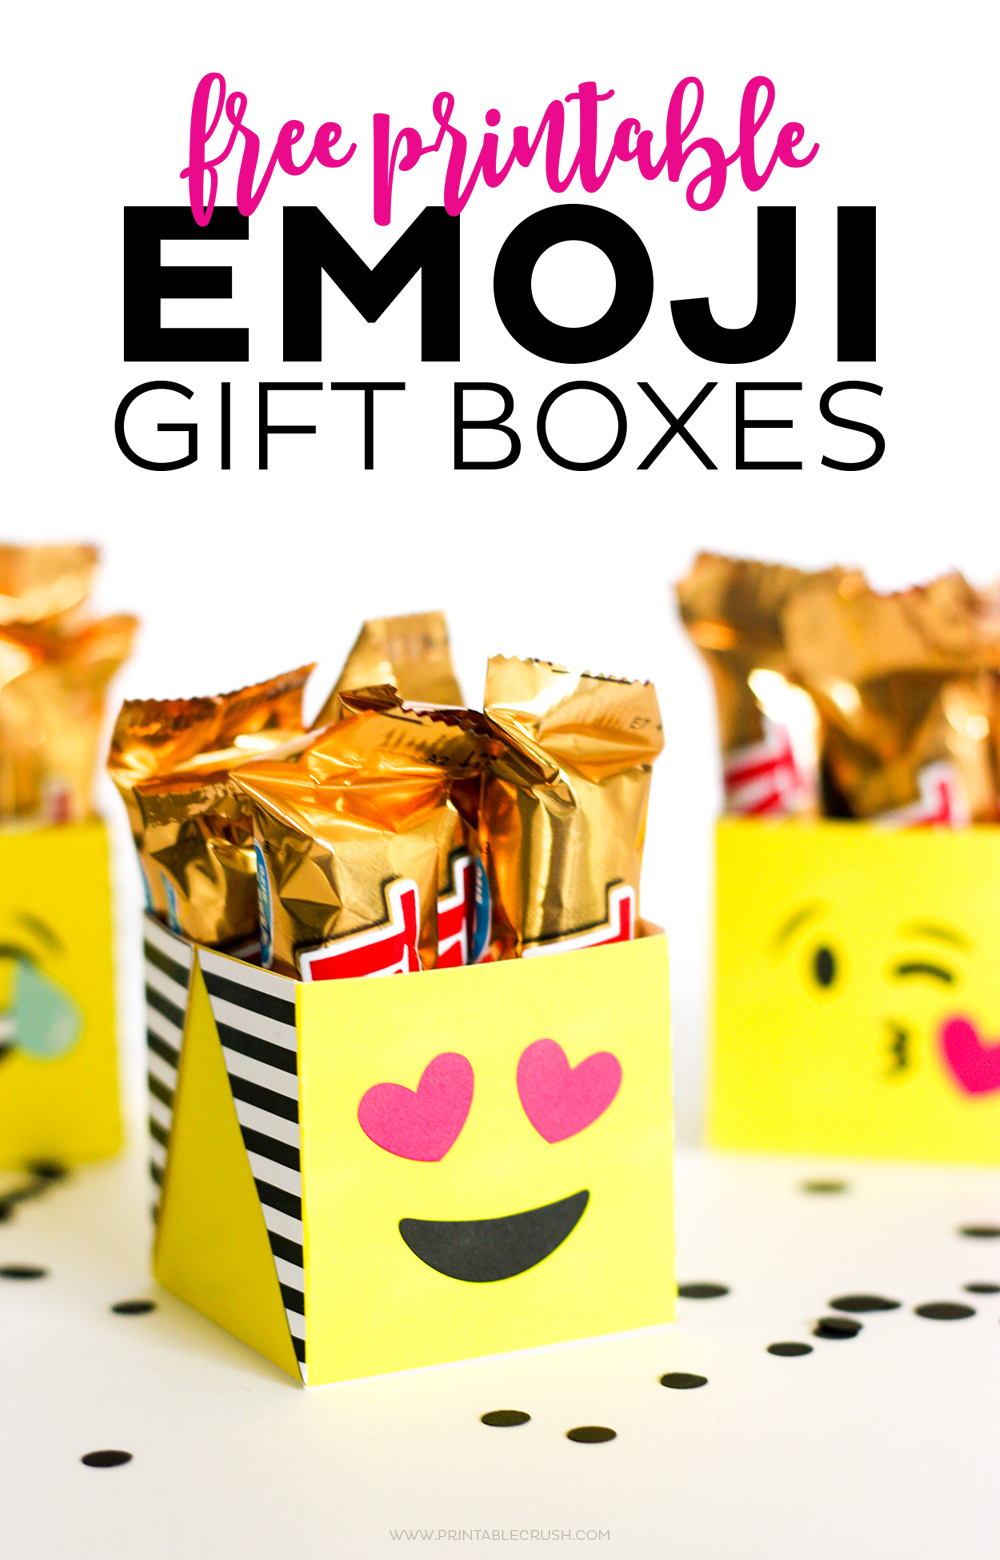 Free printable emoji gift boxes printable crush download these free printable emoji boxes for the gift or party decoration i have all negle Choice Image